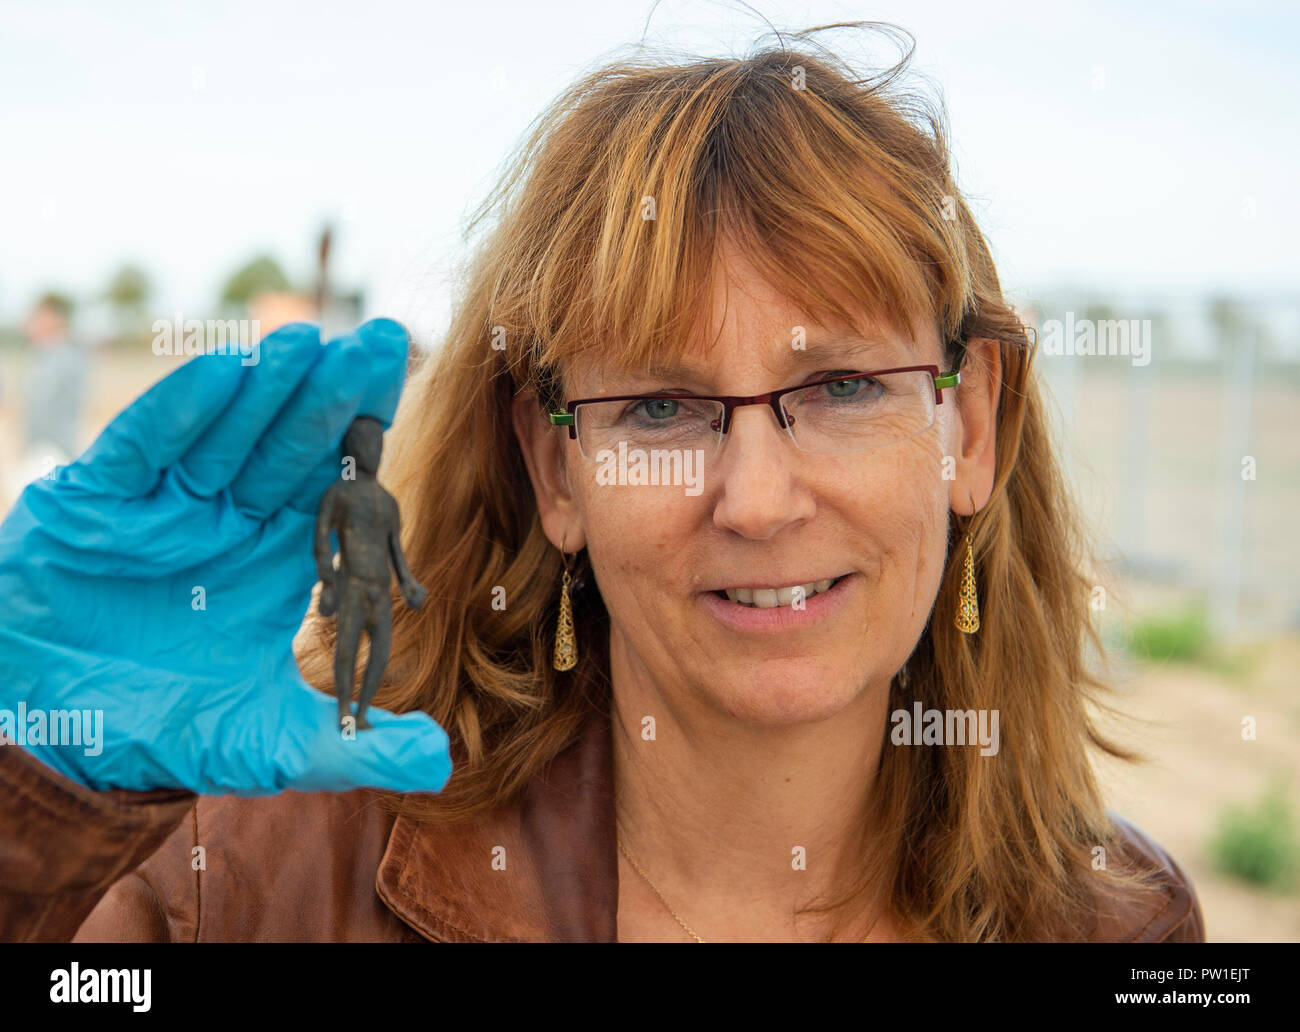 12 October 2018, North Rhine-Westphalia, Moenchengladbach: Kerstin Kraus, archaeologist at the Landschaftsverband Rheinland - Amt für Bodendenkmalpflege ('Agricultural Association Rhineland - Office for Archaeological Site Care'), holding a figure from an archaeological find. Two finders have discovered a large amount of coins from the 4th/5th century with detectors. Photo: Christophe Gateau/dpa Stock Photo